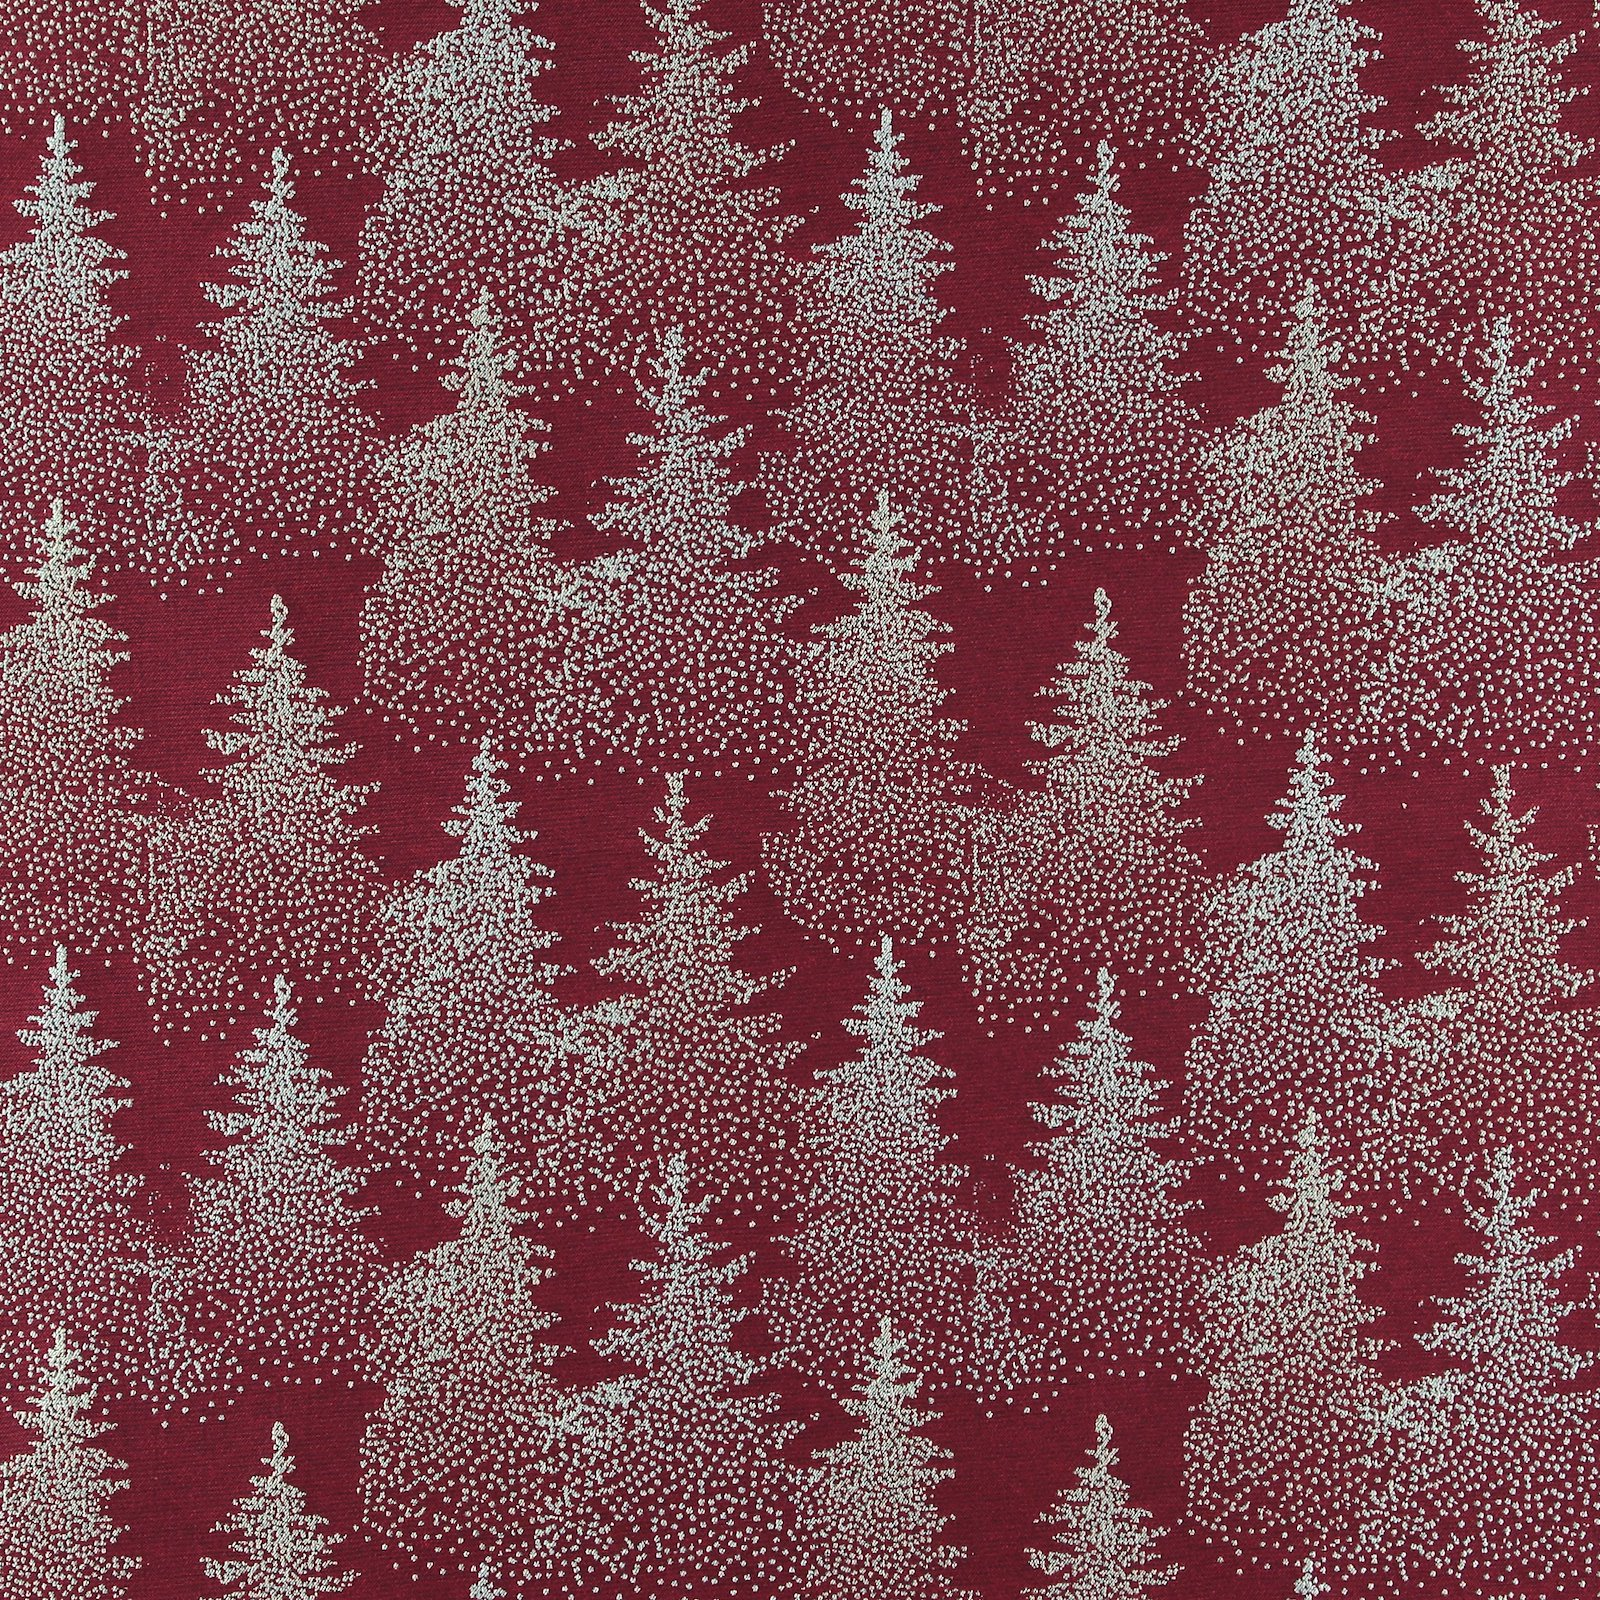 Jacquard classic red w gold/silver trees 824175_pack_lp